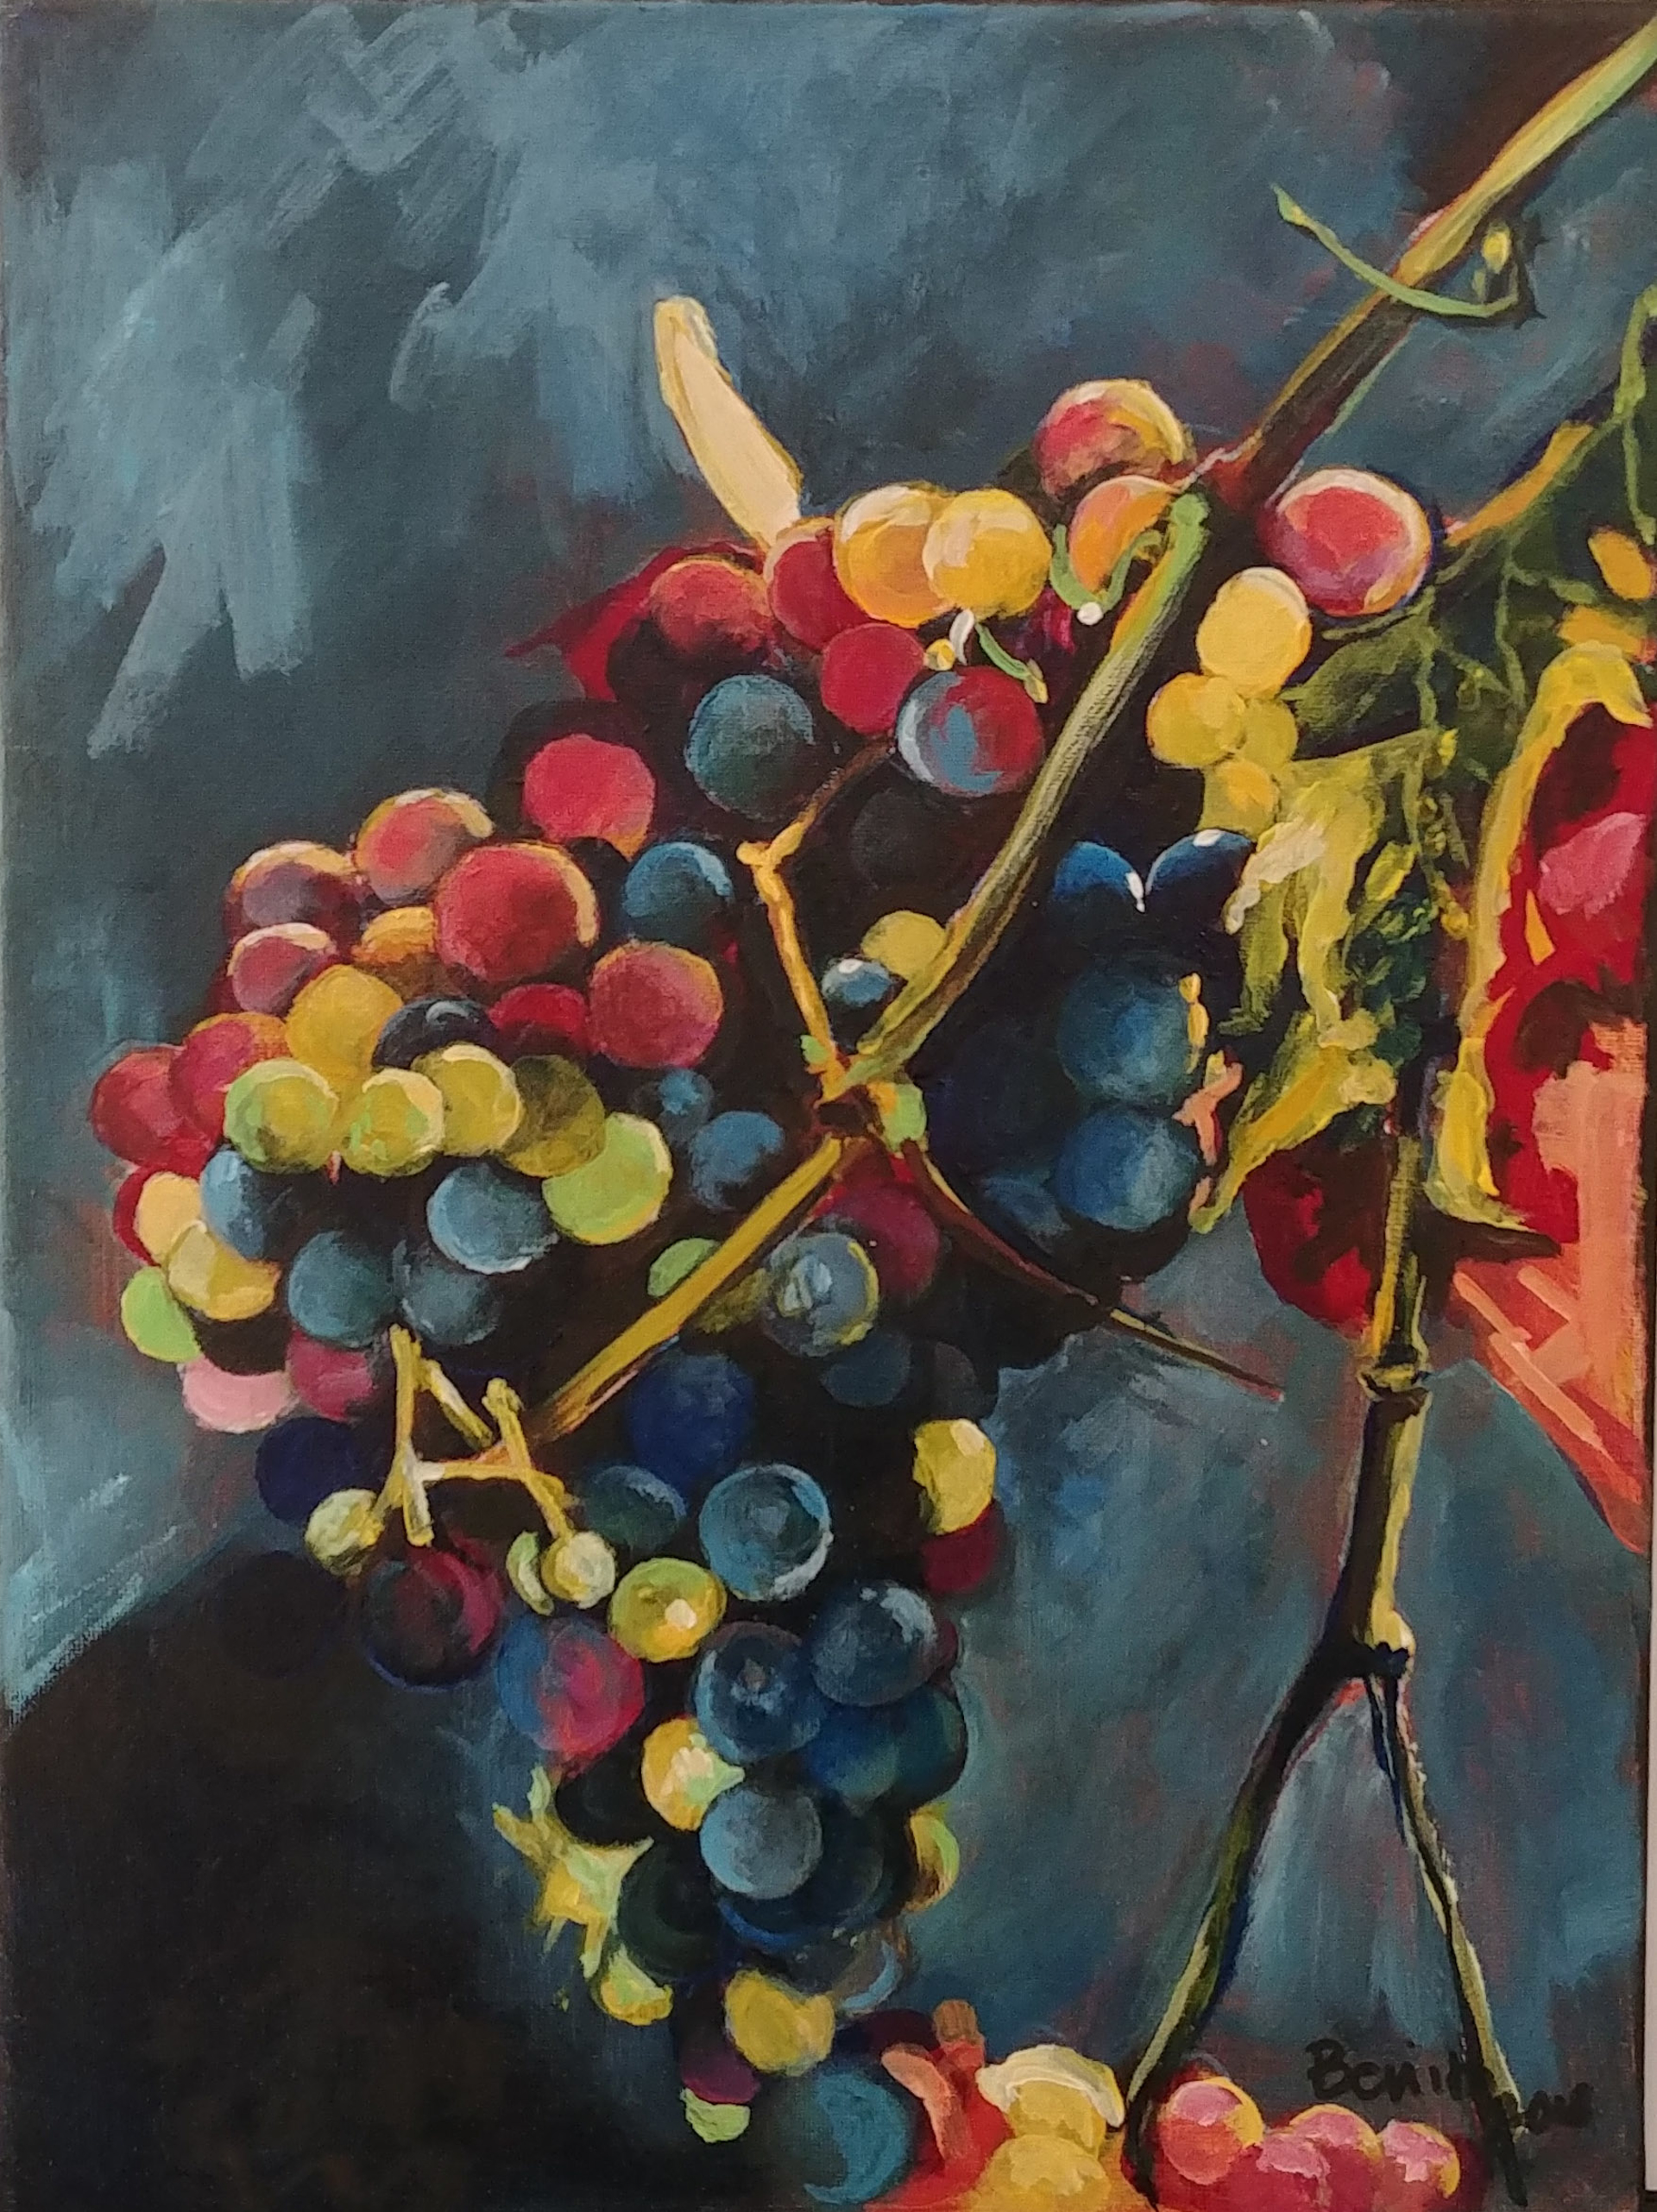 Merlot by Benita Cole (McMinnville, OR)